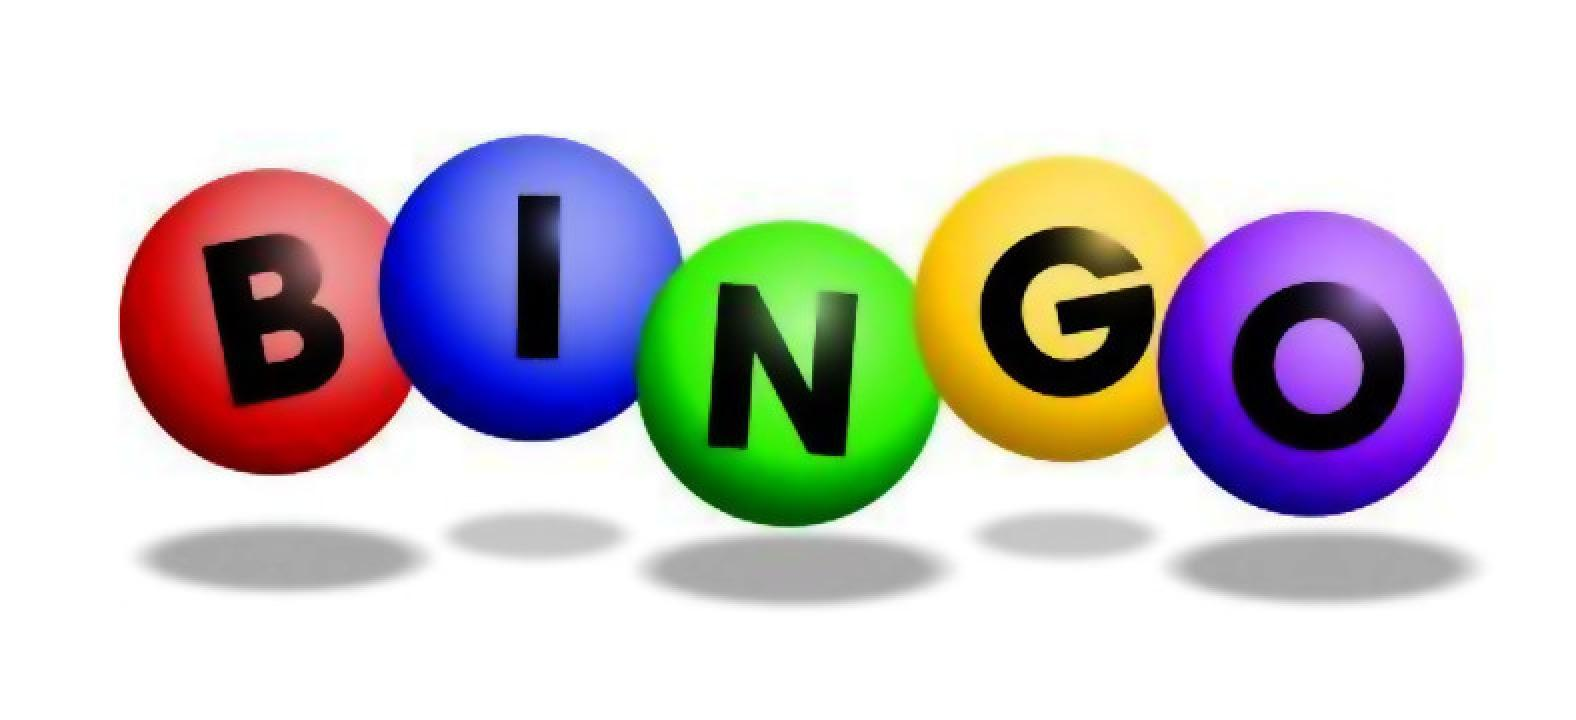 Bingo clipart green, Bingo green Transparent FREE for.